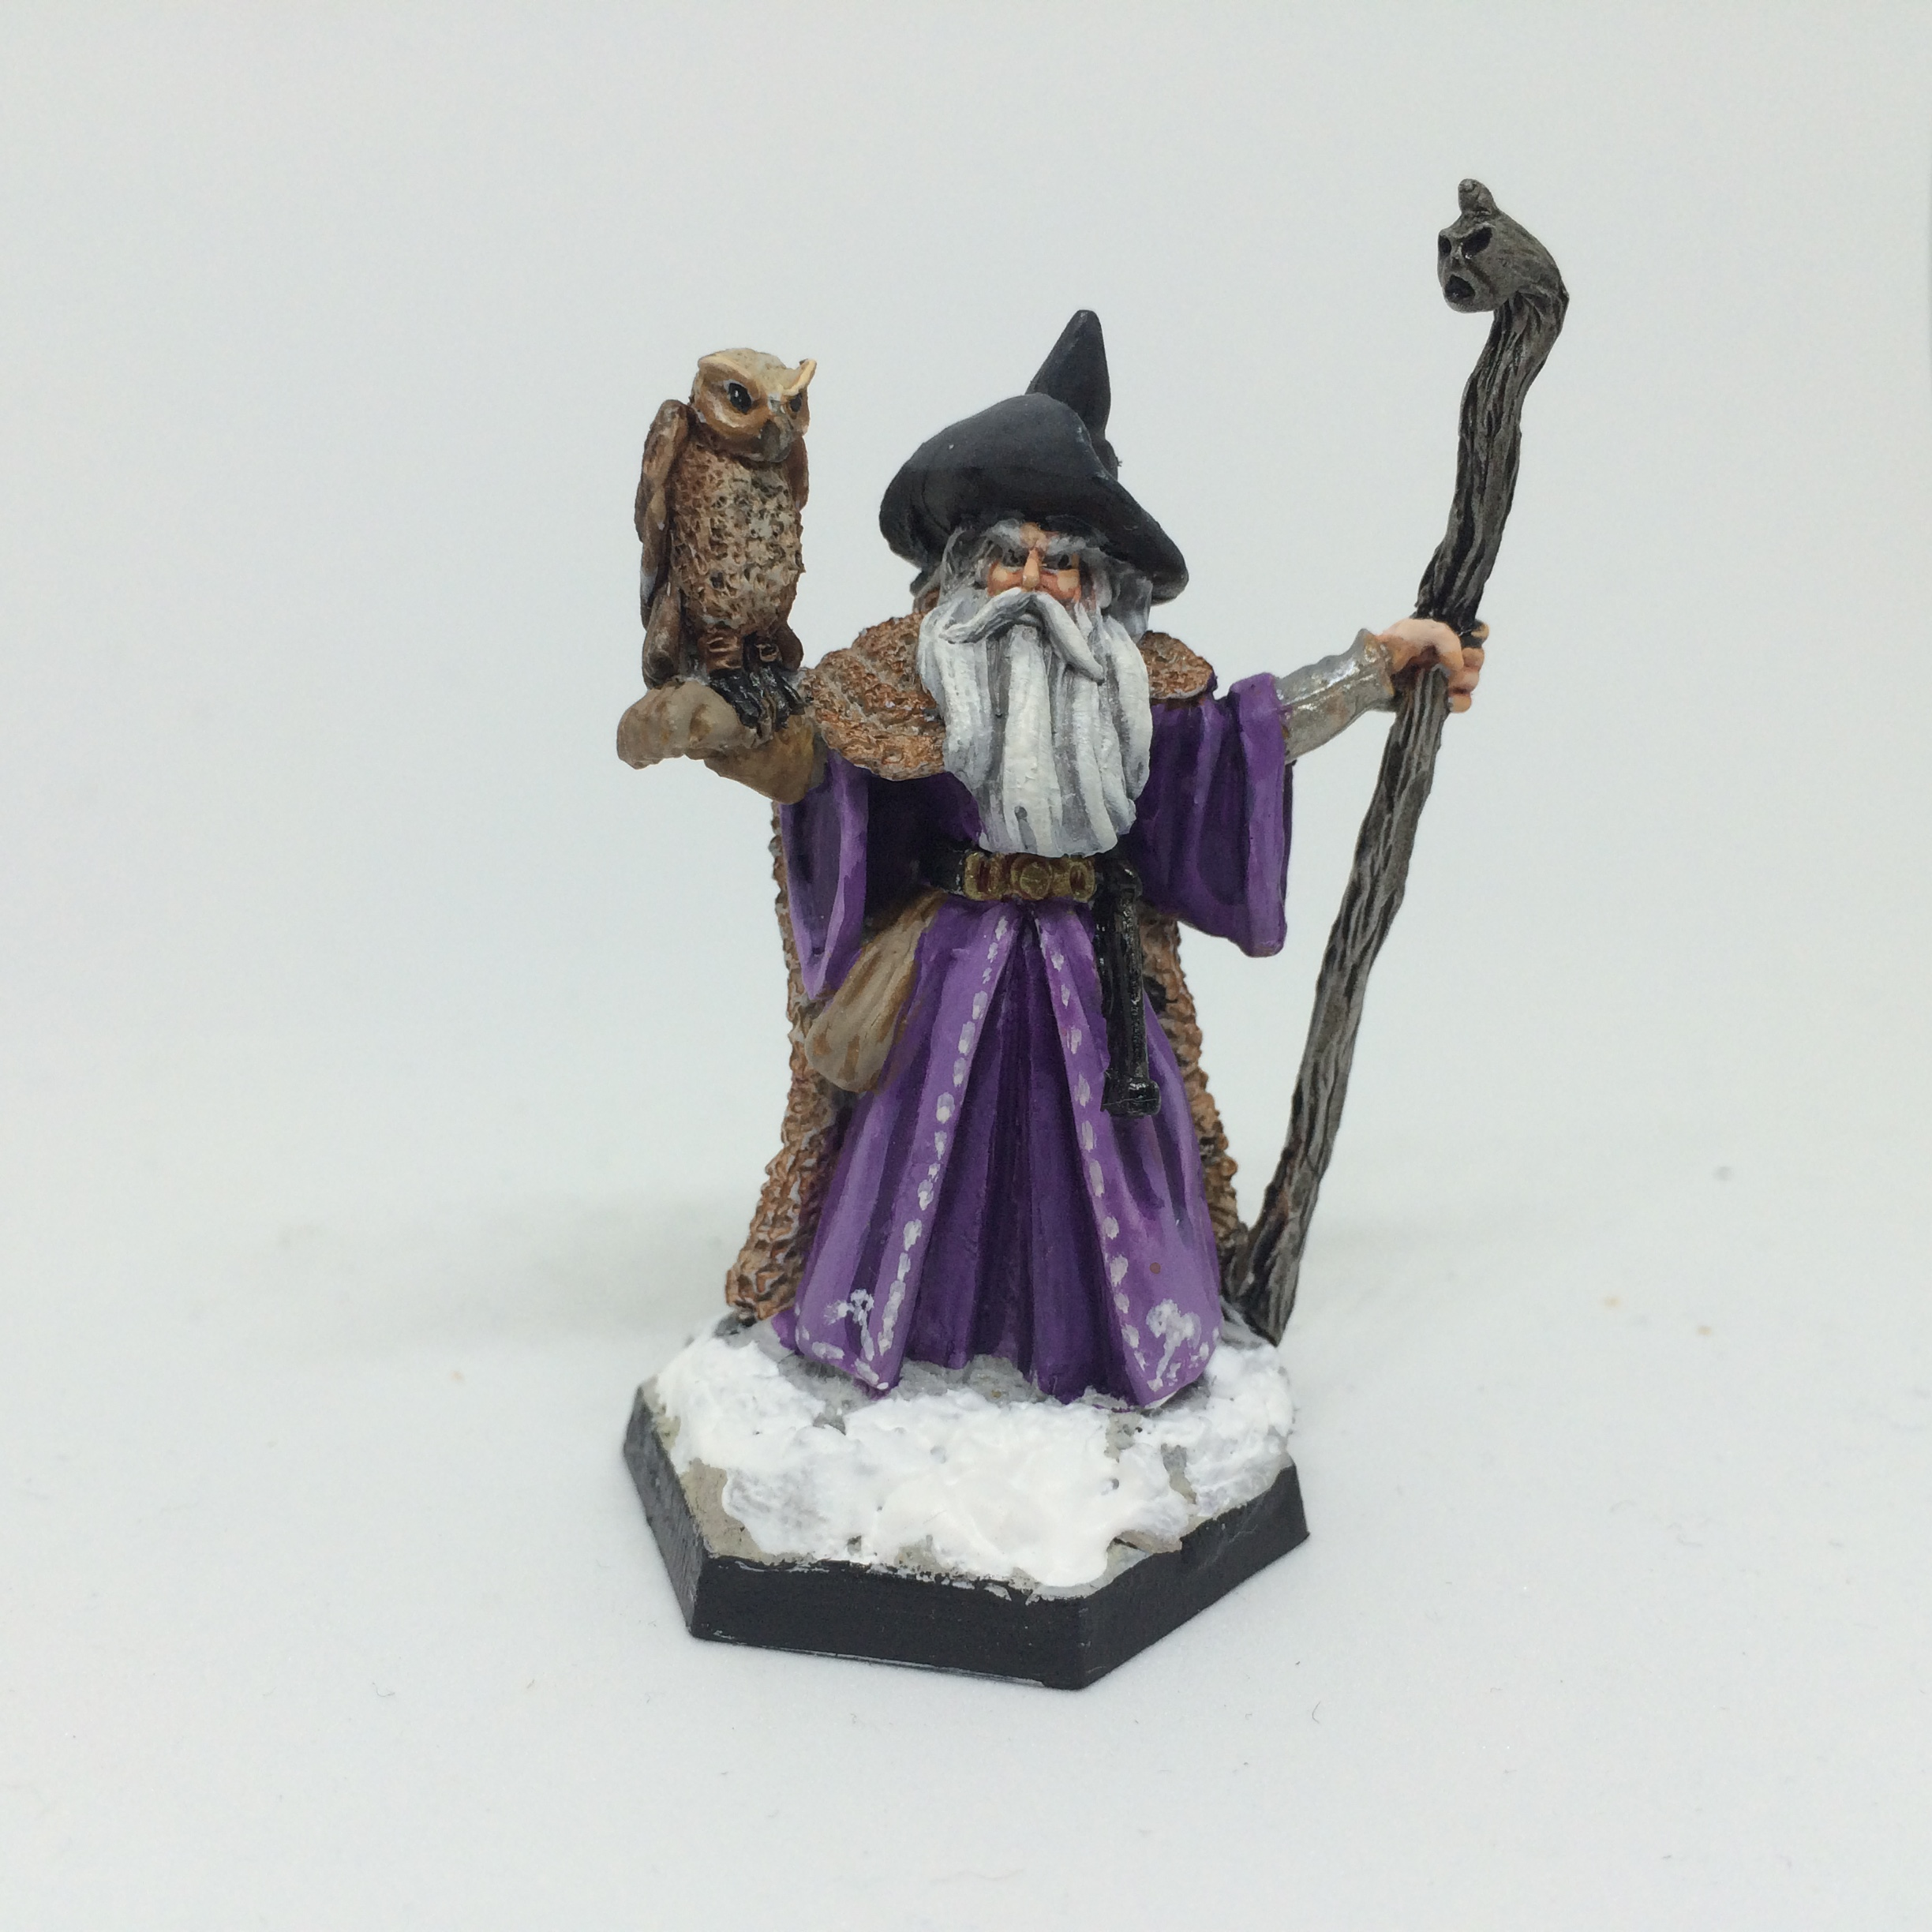 Frostgrave wizard (Reaper's Amathor, Arch Mage)